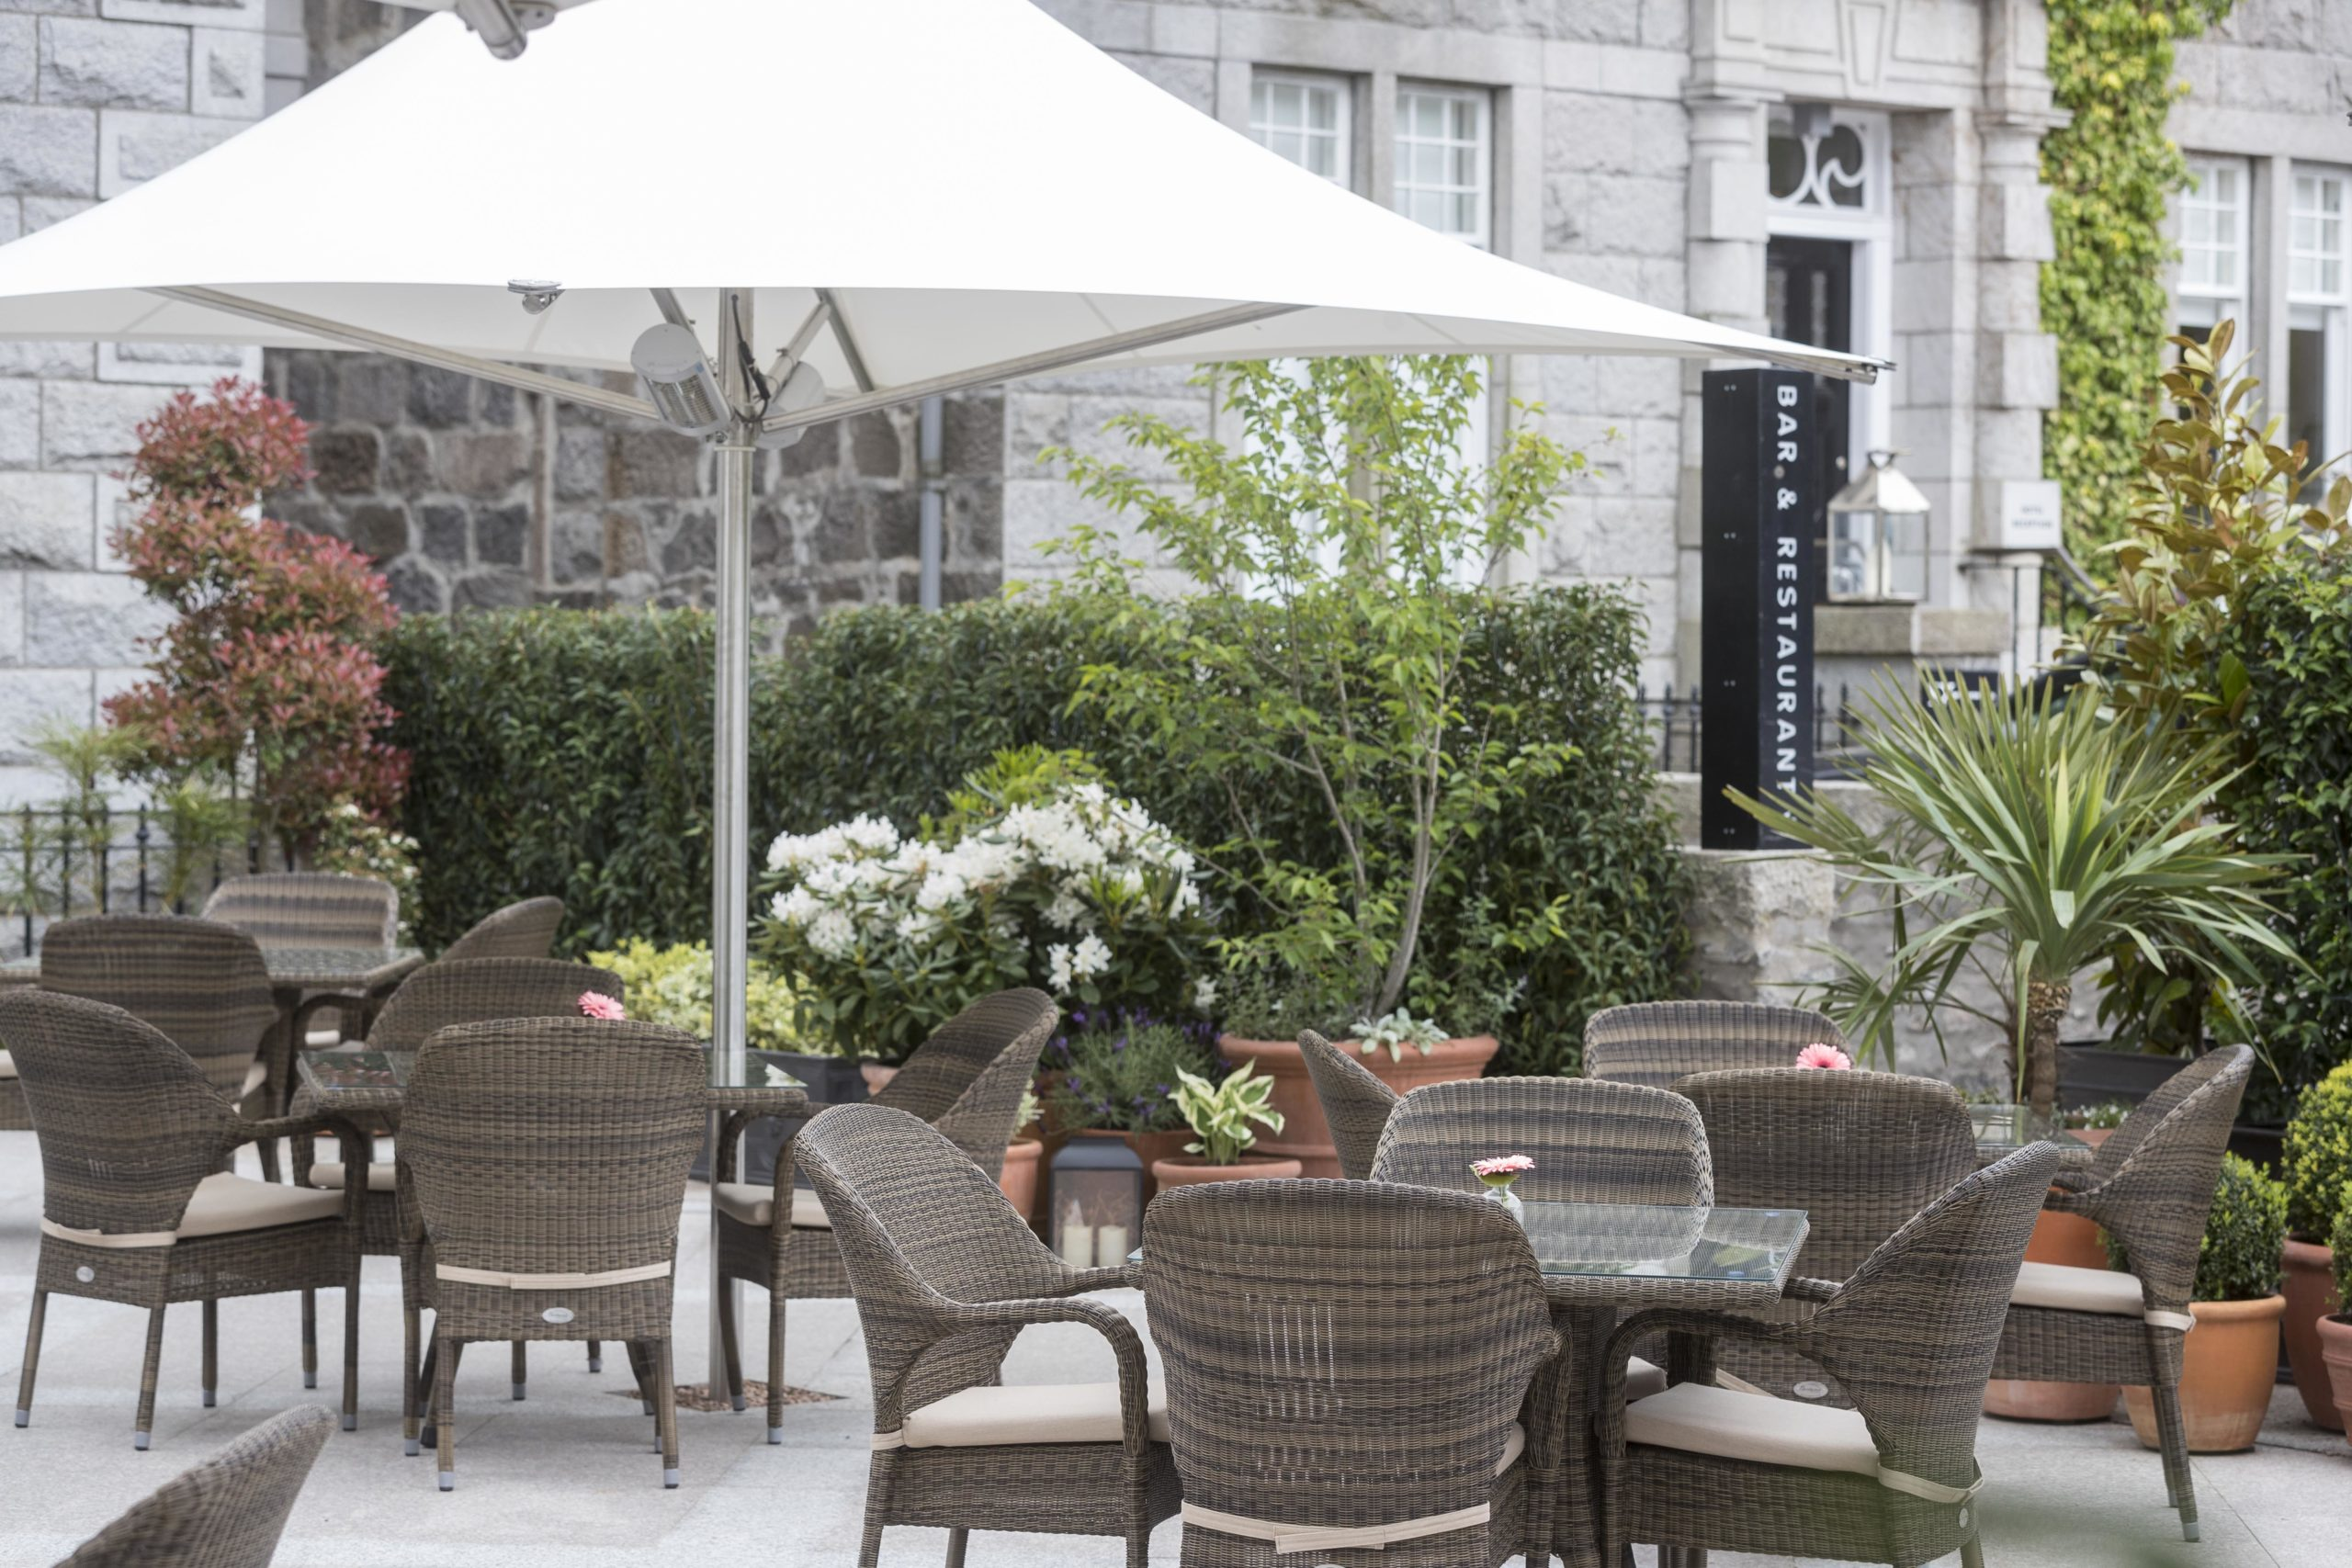 The outdoor area at The Chester Hotel